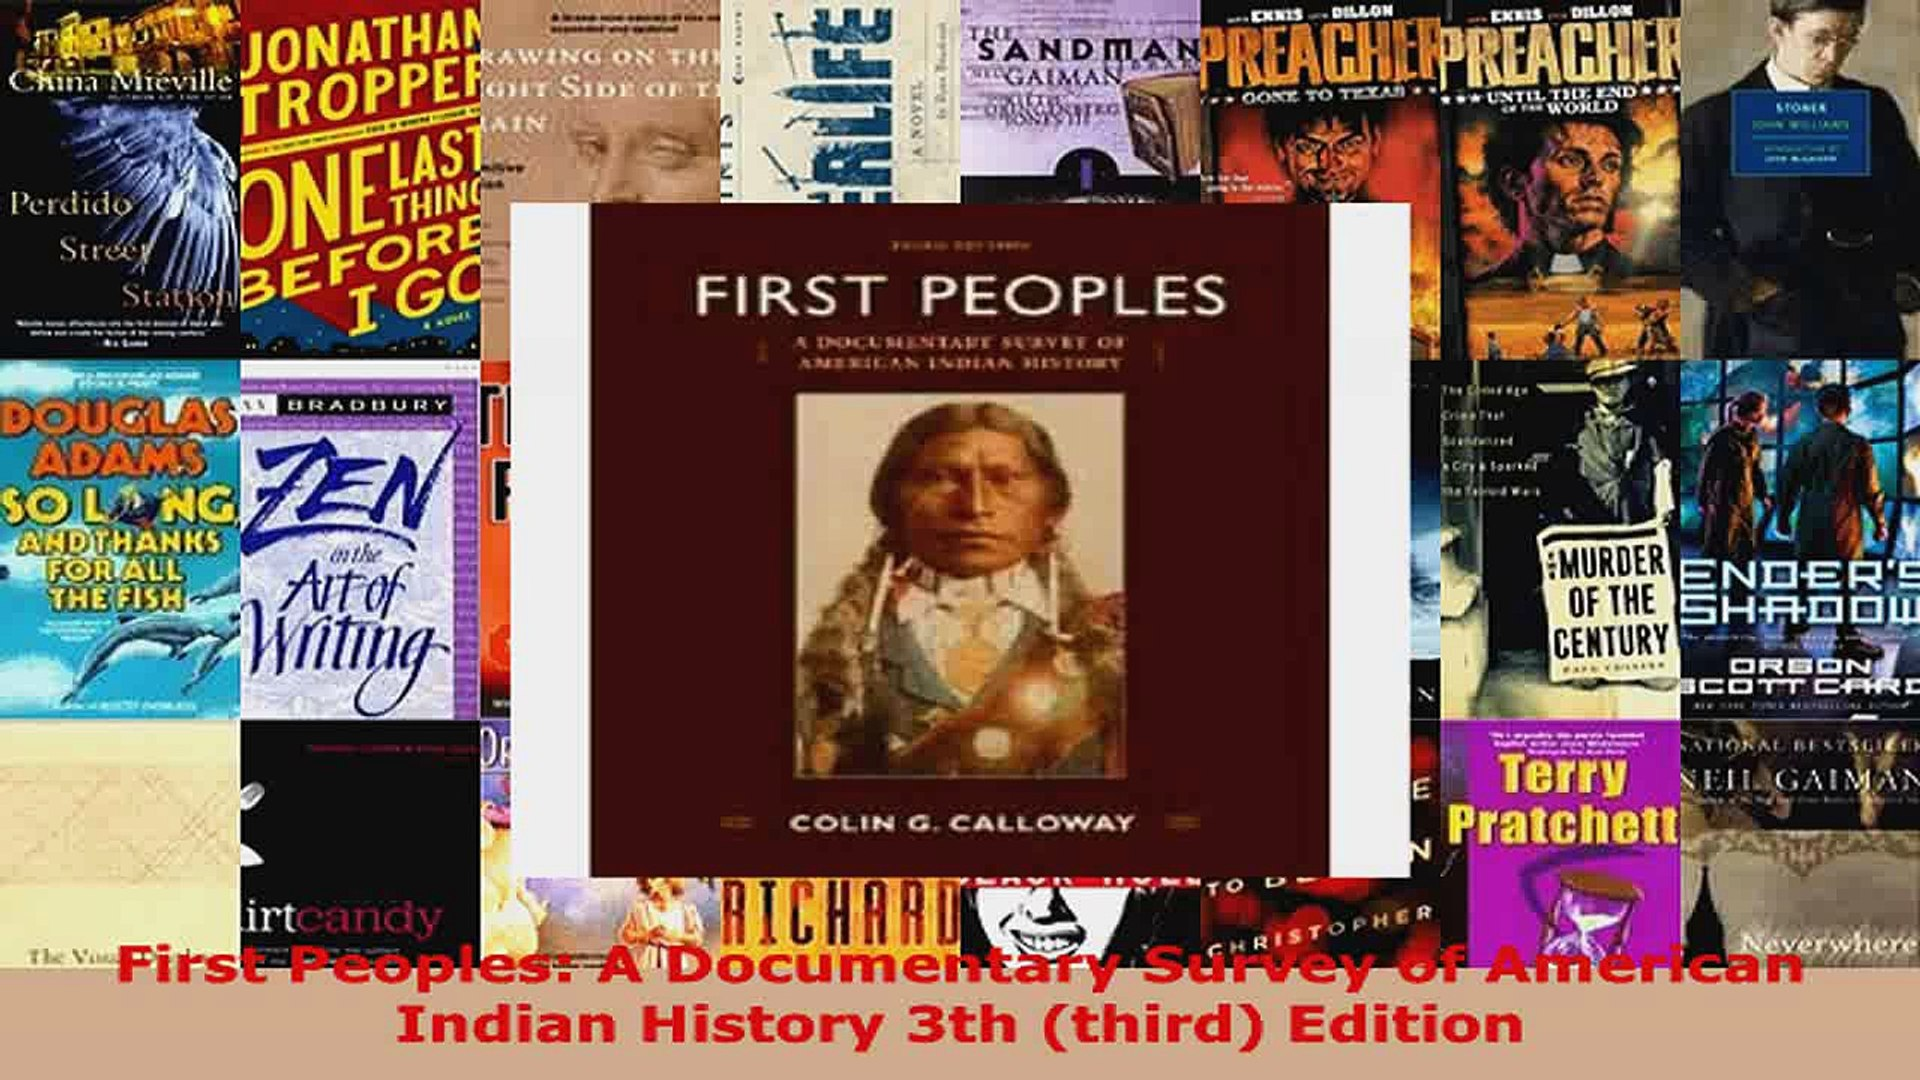 Download  First Peoples A Documentary Survey of American Indian History 3th third Edition Ebook Free